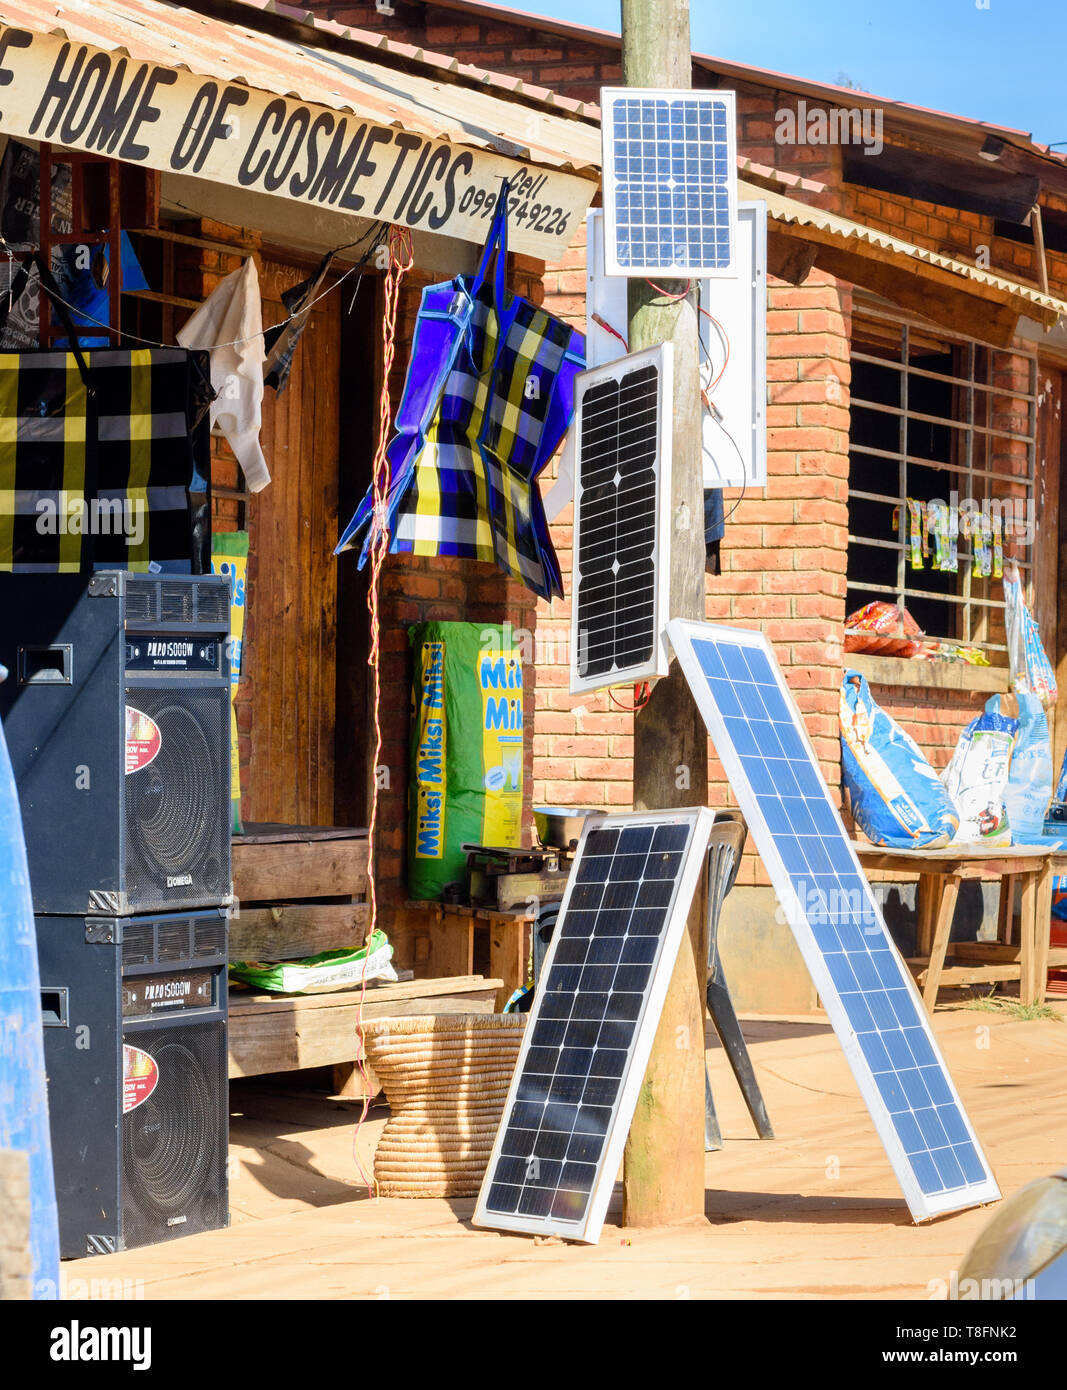 solar panels and speakers for sale at a retail shop in Dedza Market Malawi - Stock Image